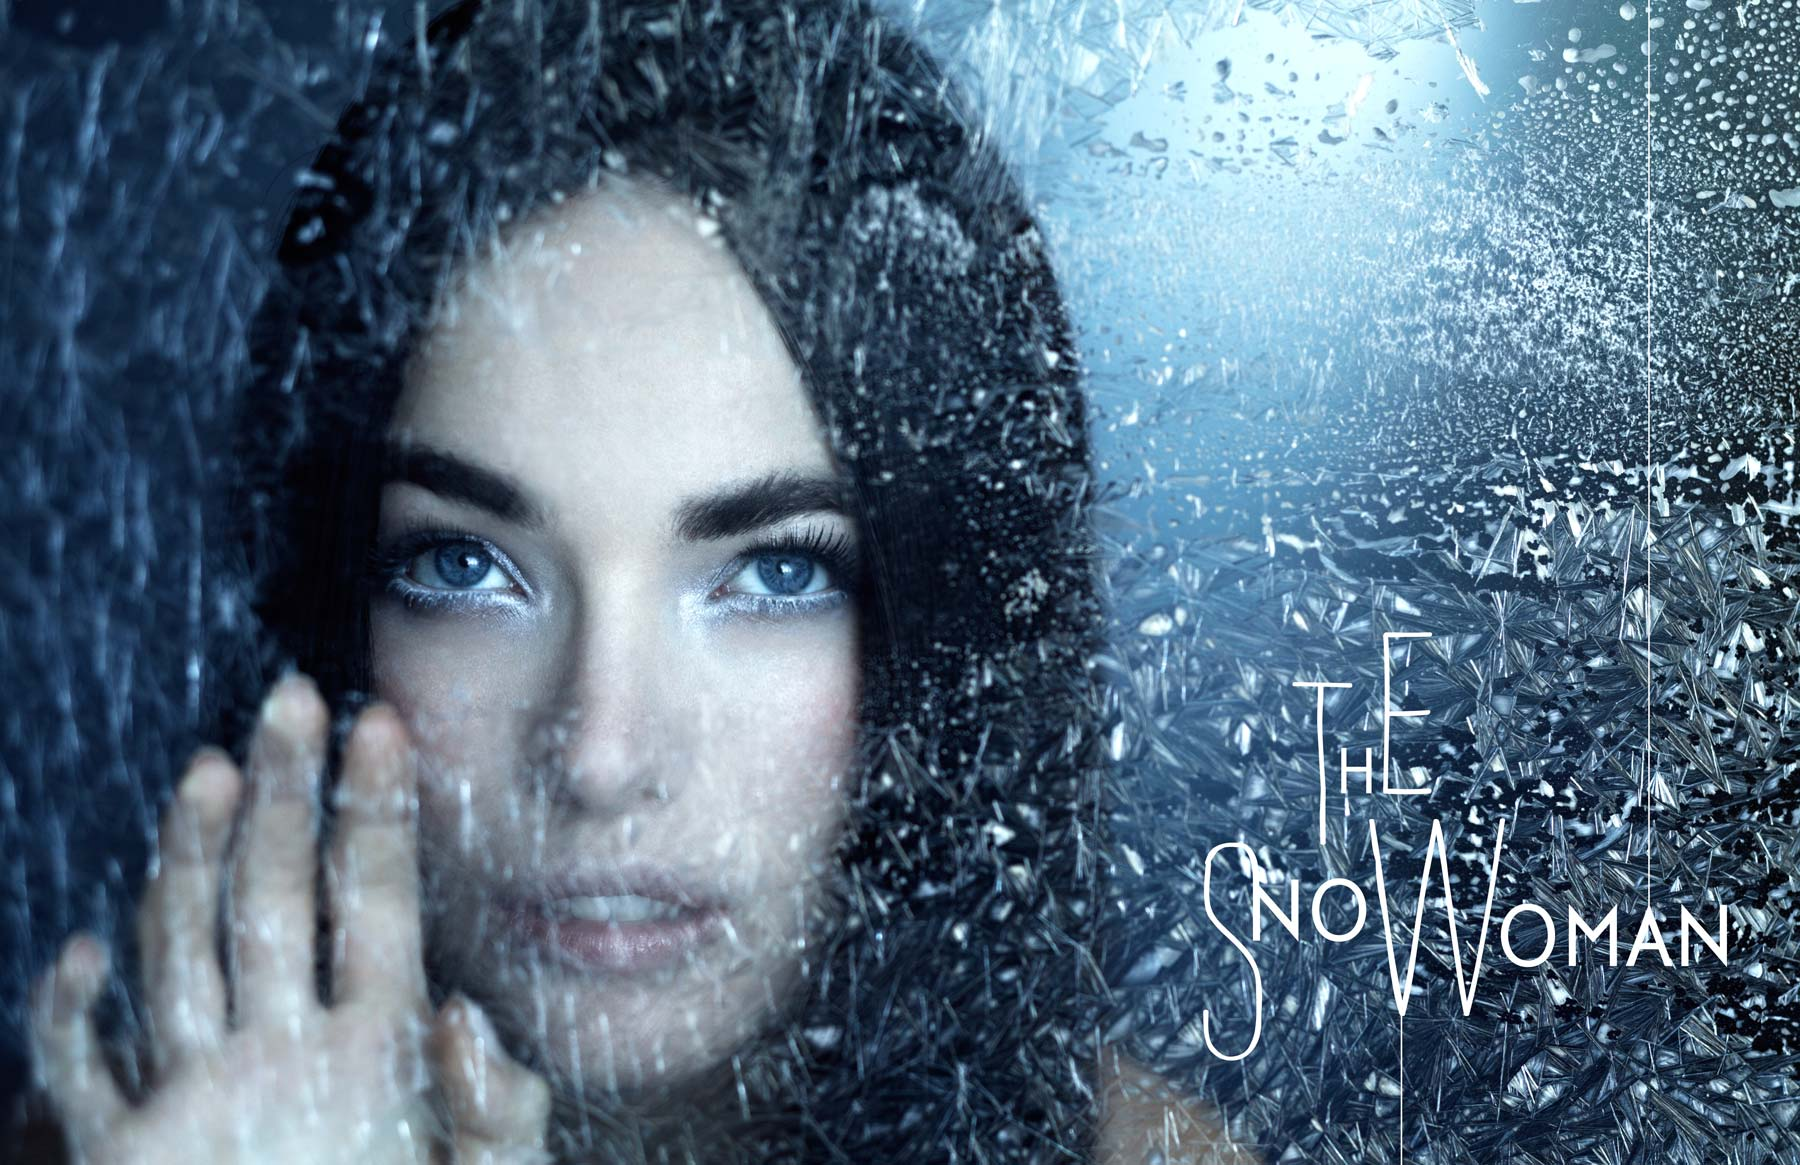 THE SNOW WOMAN - The Voracity by Anna Williams